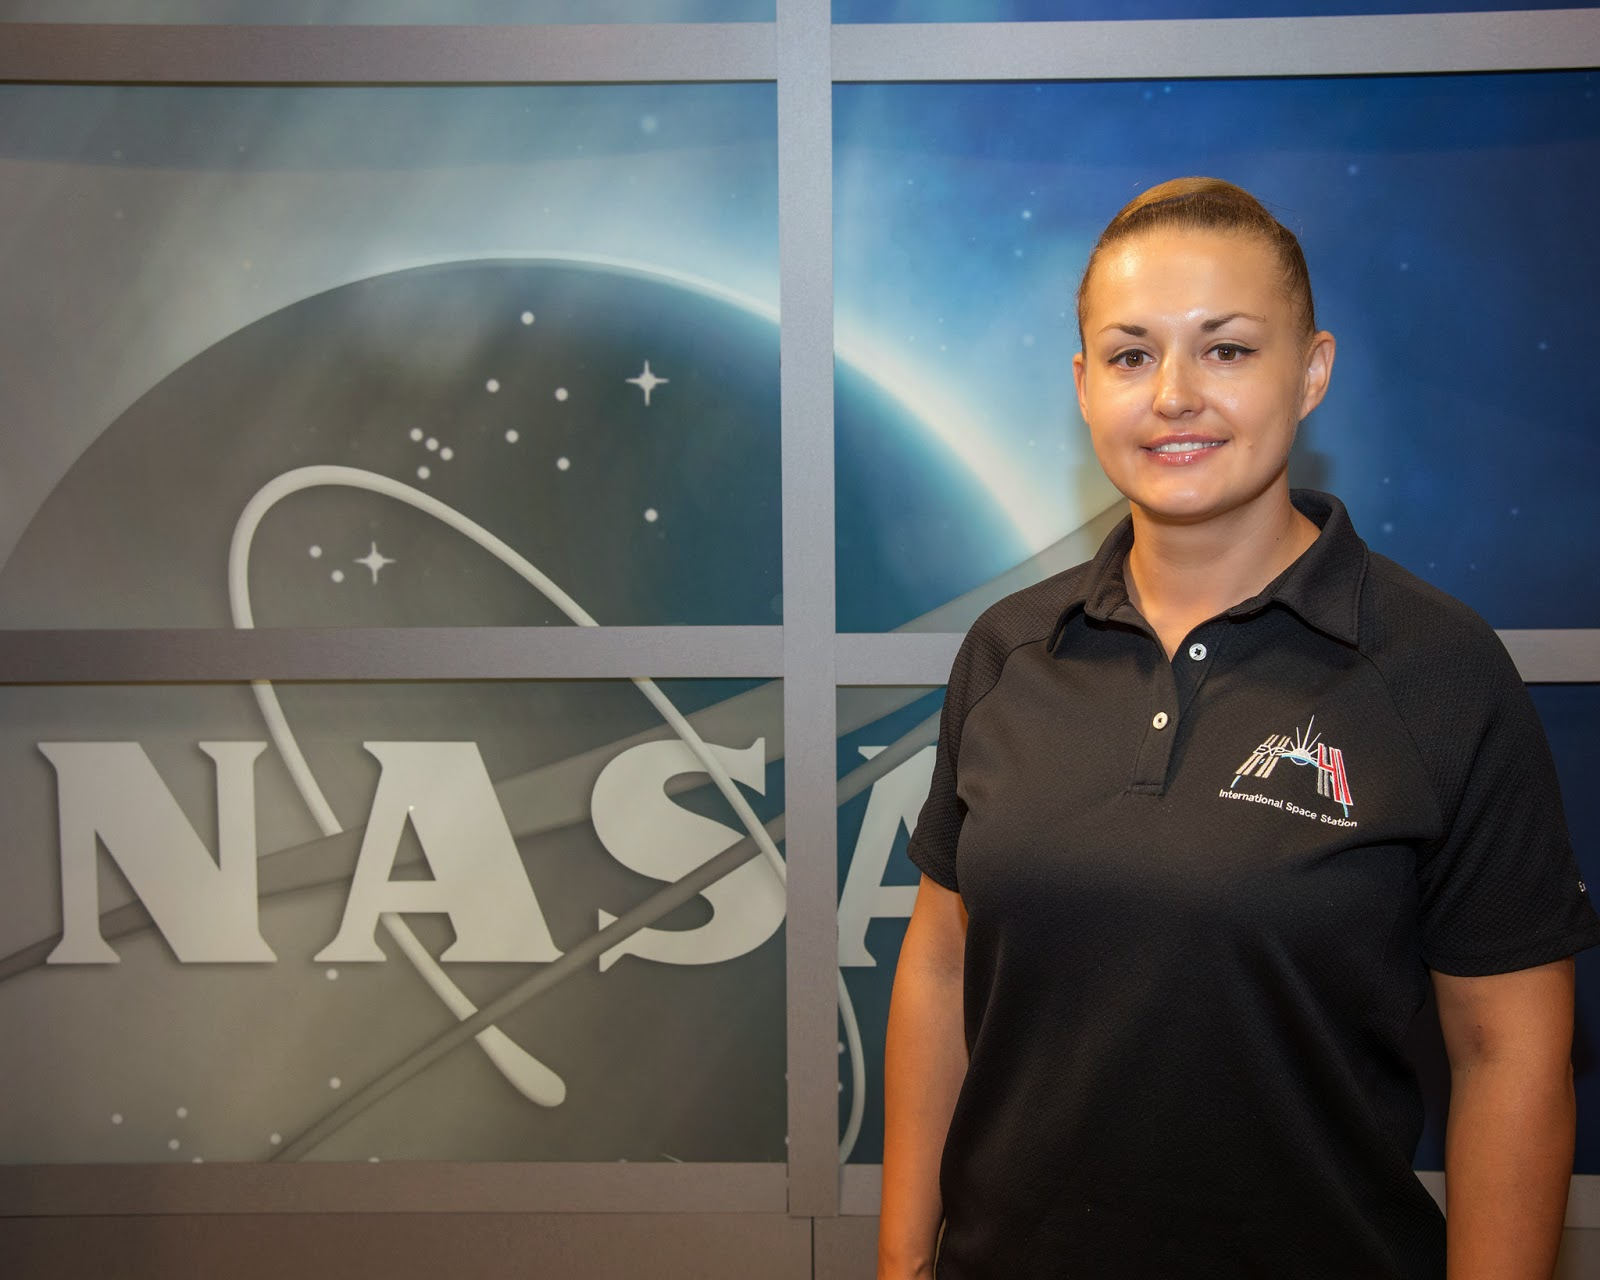 Russian cosmonaut Elena Serova, Expedition 41/42 flight engineer, poses for a portrait following an Expedition 41/42 preflight press conference at NASA's Johnson Space Center. Photo credit: NASA/Bill Stafford